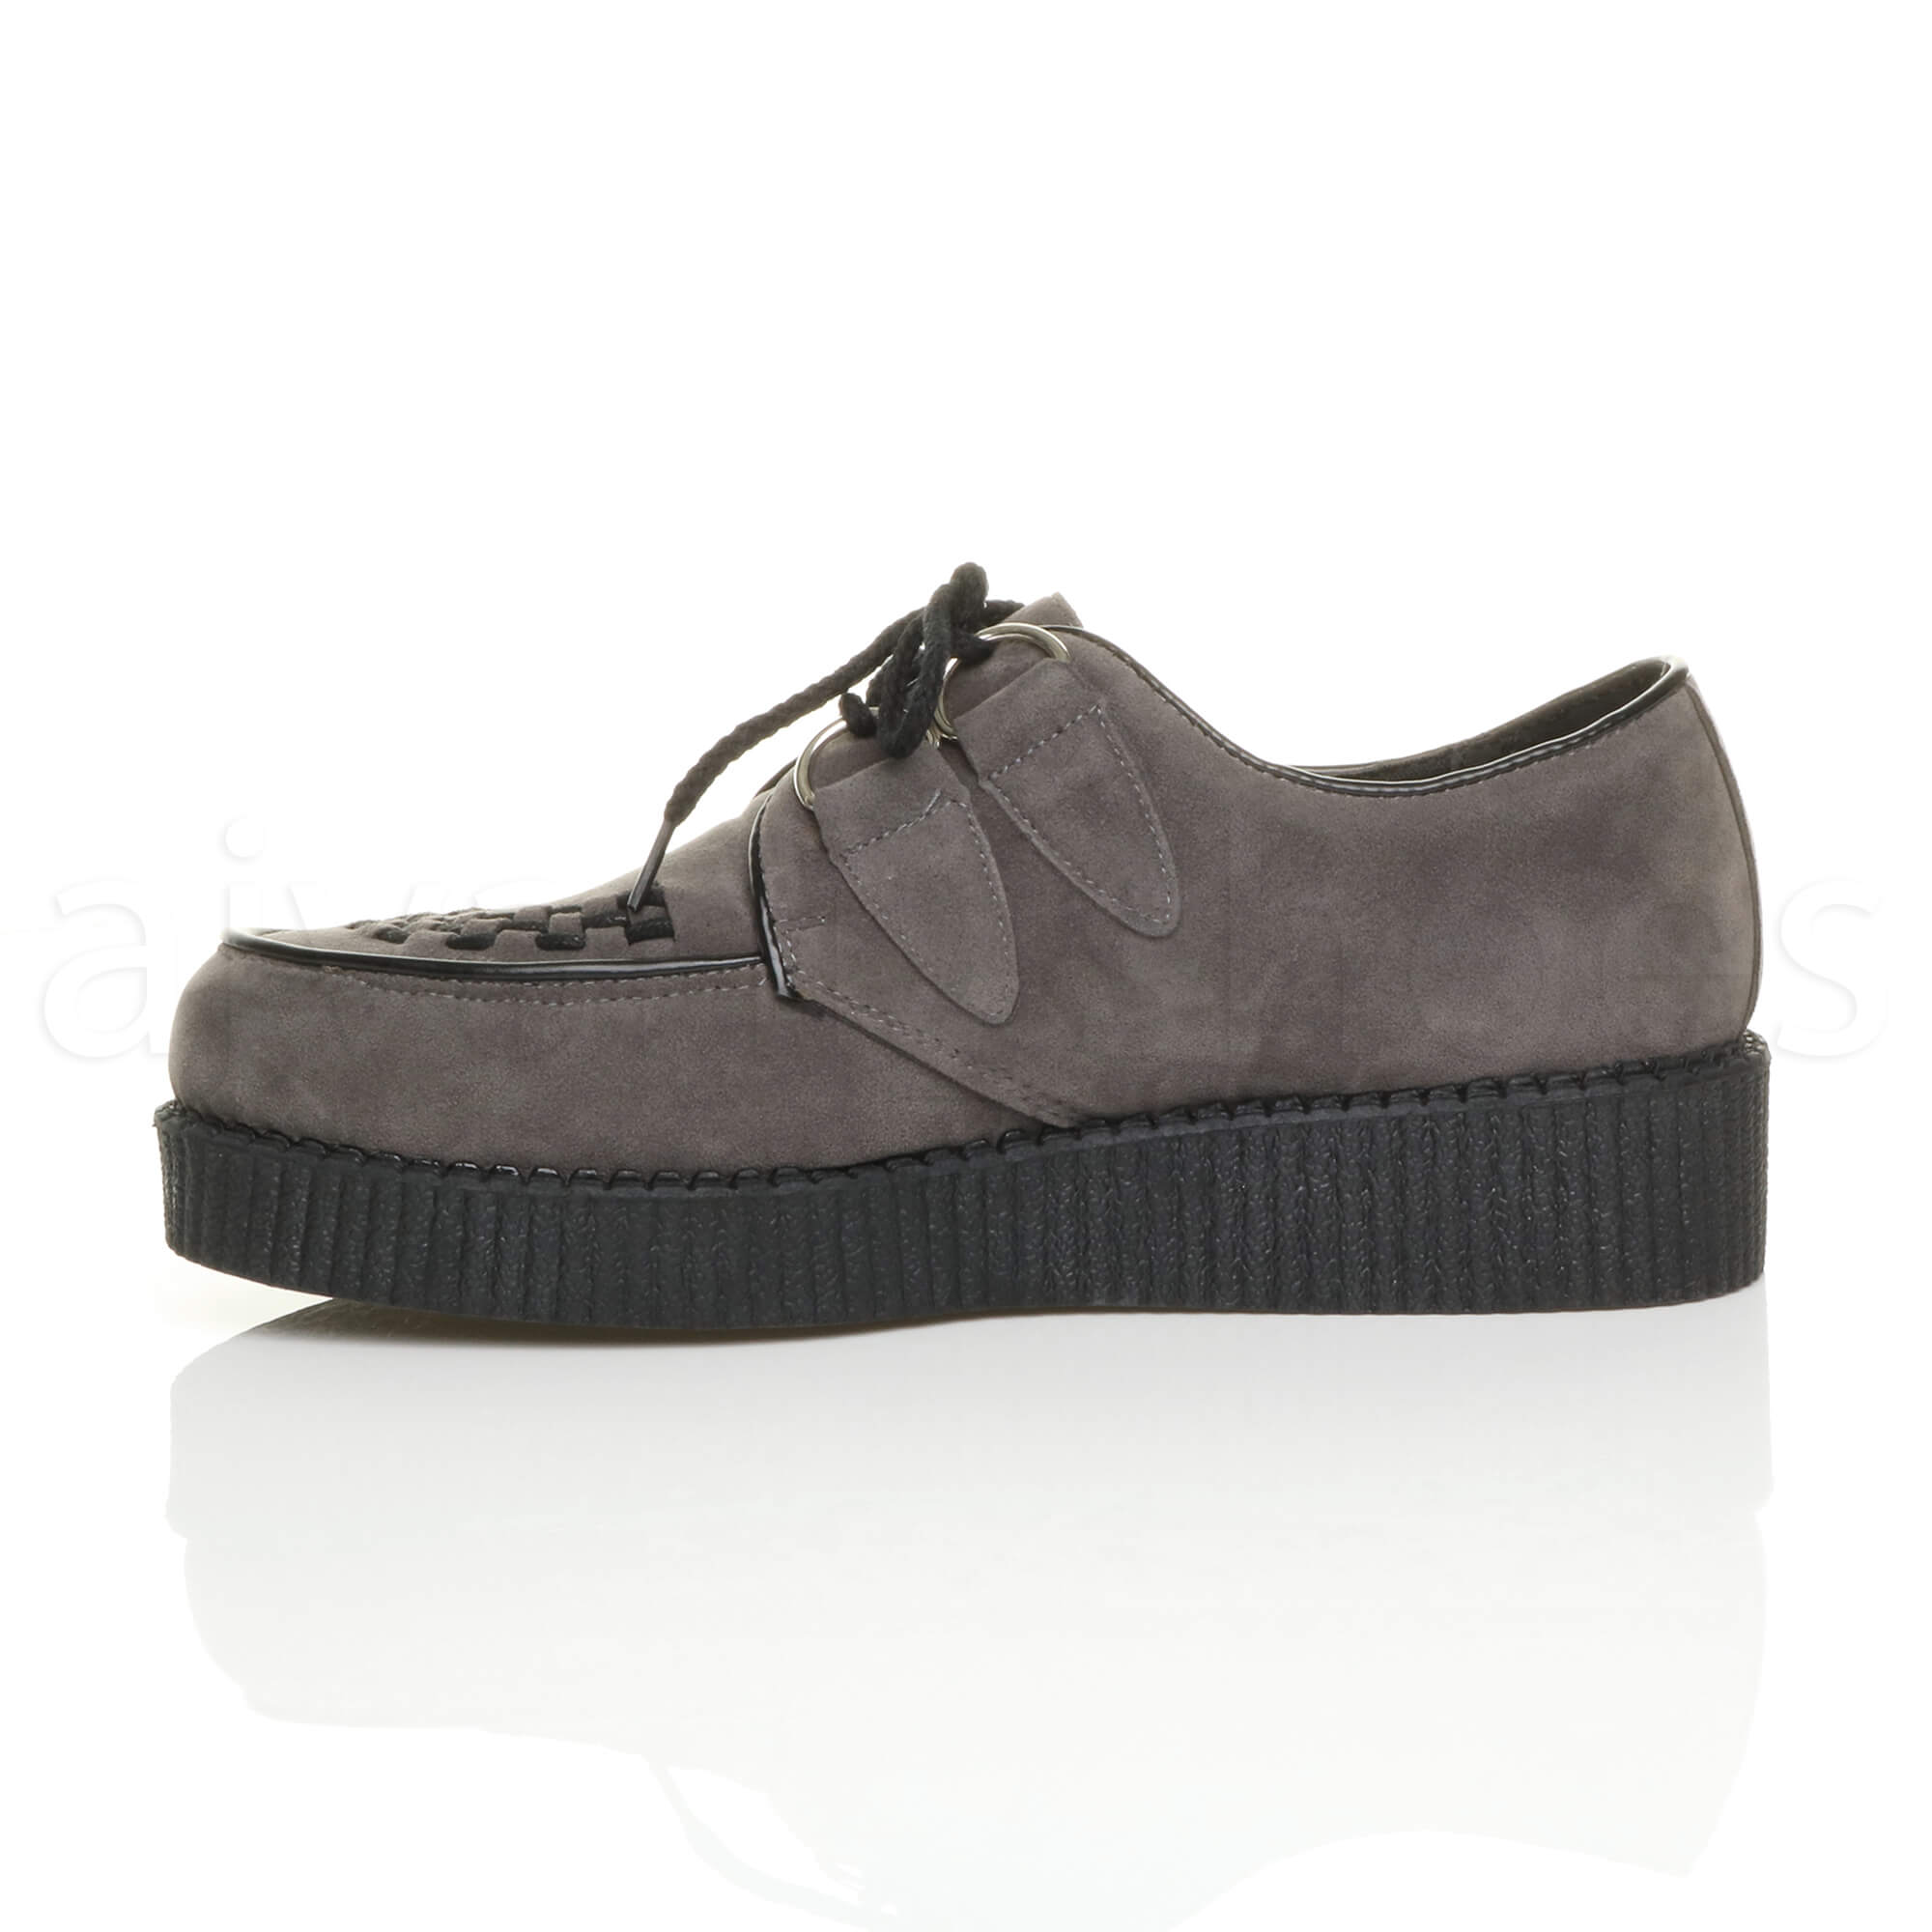 MENS-PLATFORM-WEDGE-LACE-UP-GOTH-PUNK-BROTHEL-CREEPERS-BEETLE-CRUSHERS-SHOES thumbnail 32